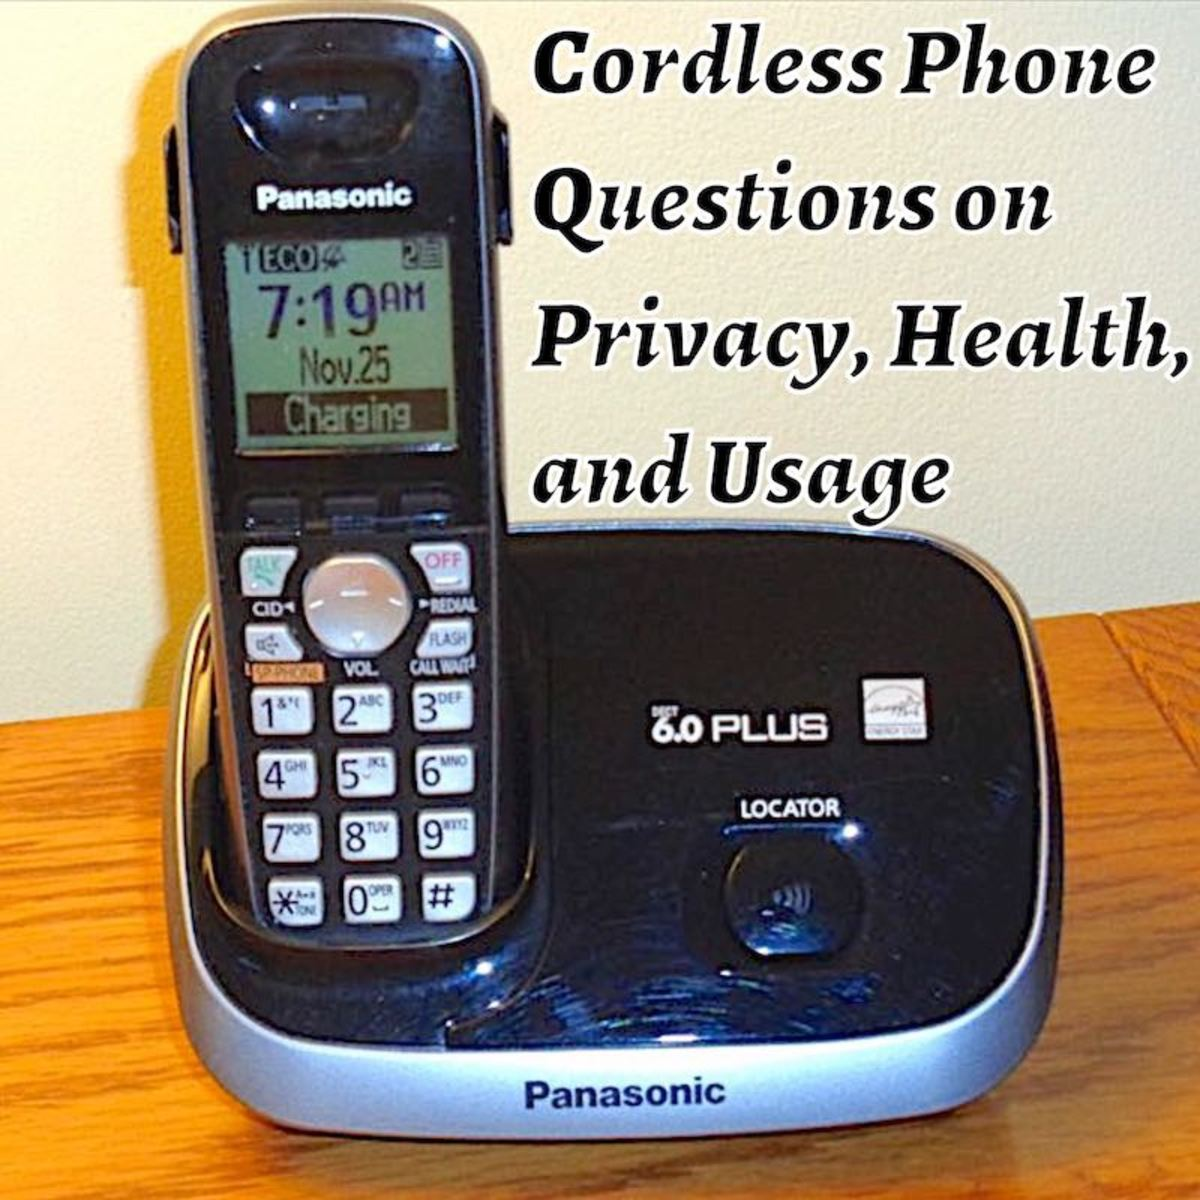 Cordless Phone Questions on Privacy, Health, and Usage